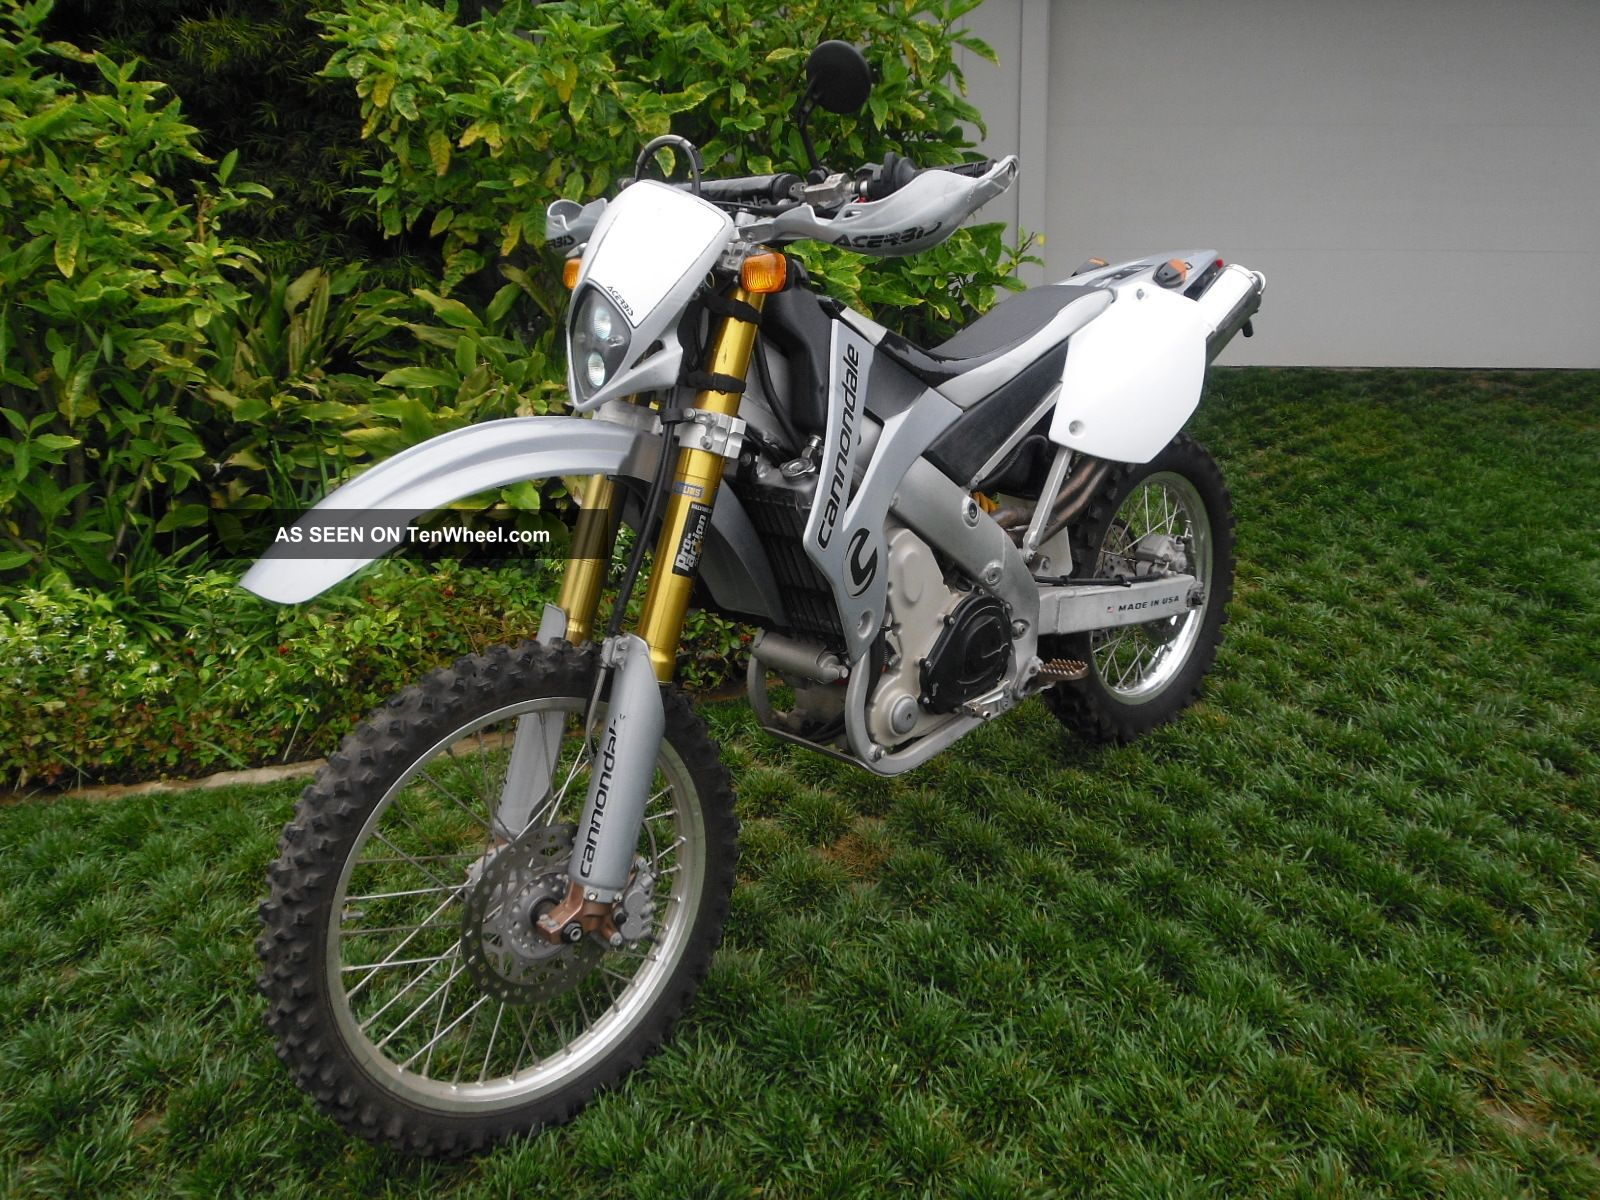 2002 Cannondale 450ex Dual Purpose Dirt Bike Rare Other Makes photo